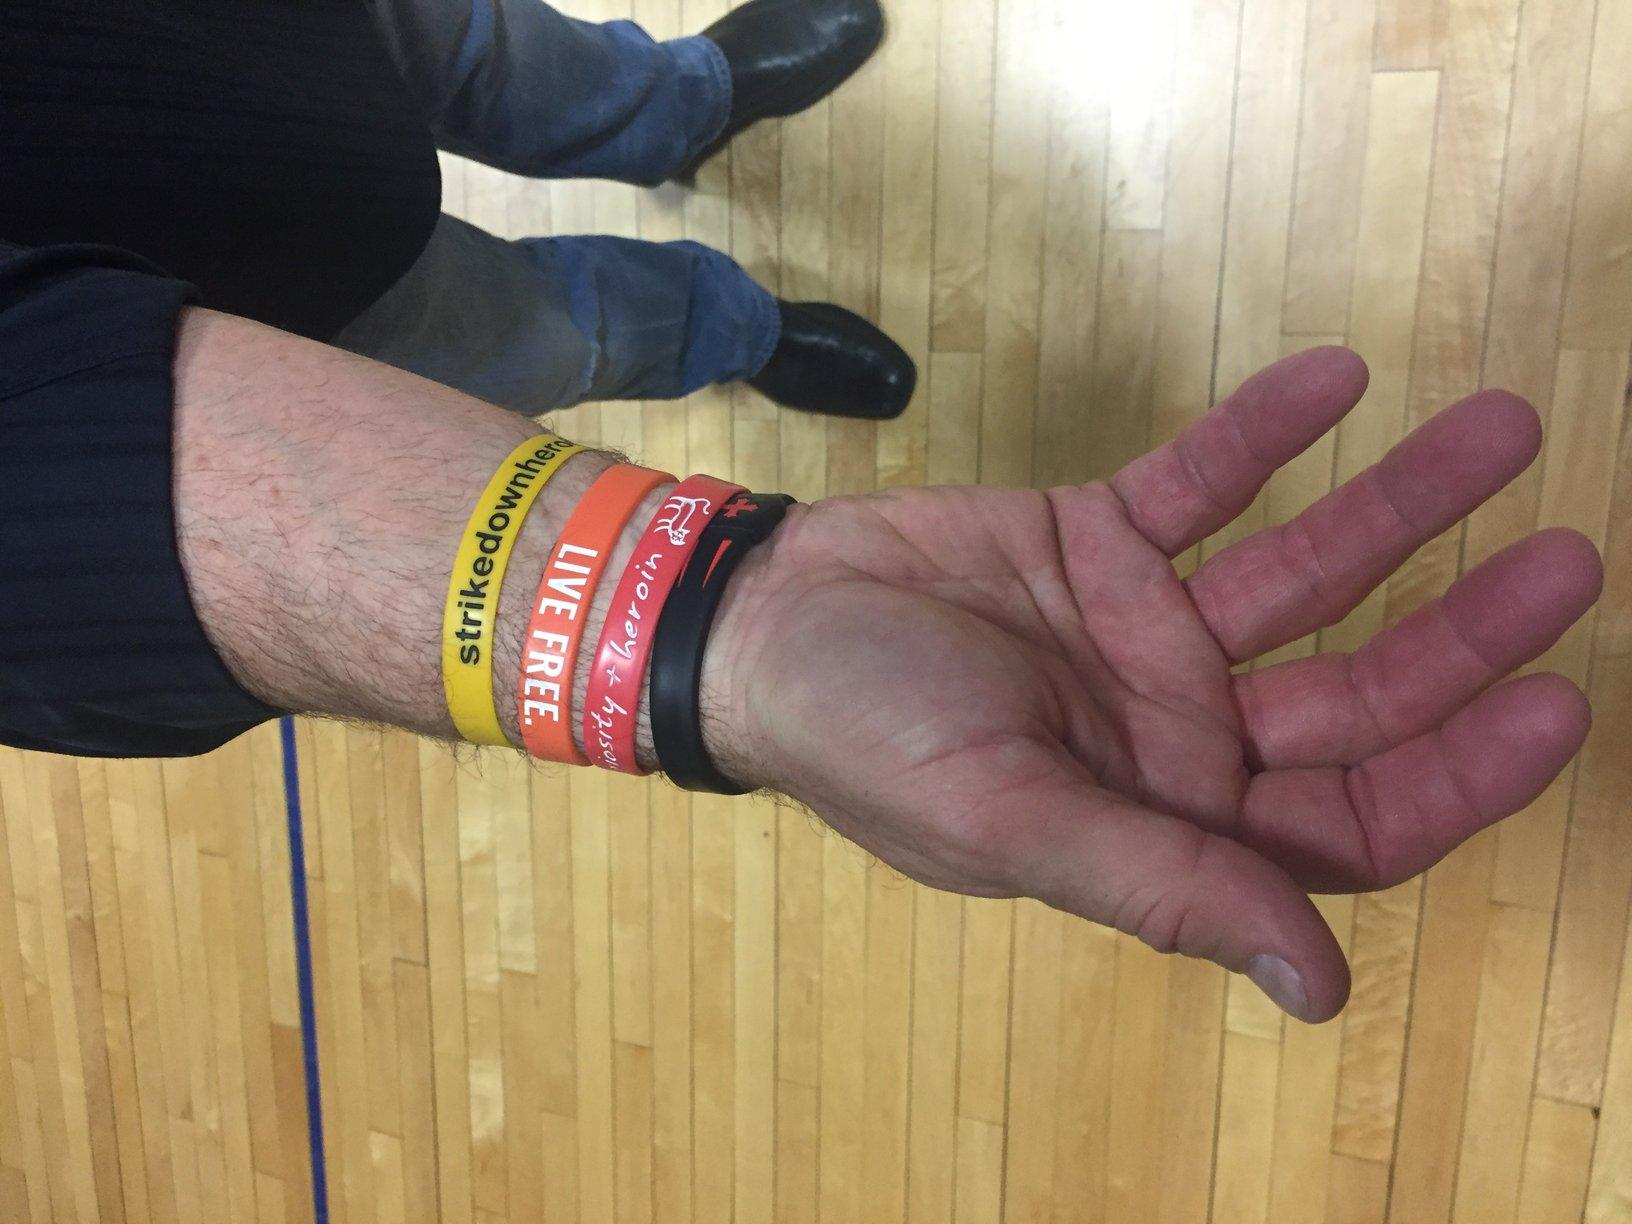 Joe+Richardson%2C+former+Red+Sox+player+and+little+league+coach%2C+displays+his+wristbands%2C+that+represent+the+awaken+project%2C+and+his+own+struggles+with+the+loss+of+his+loved+ones+to+heroin.